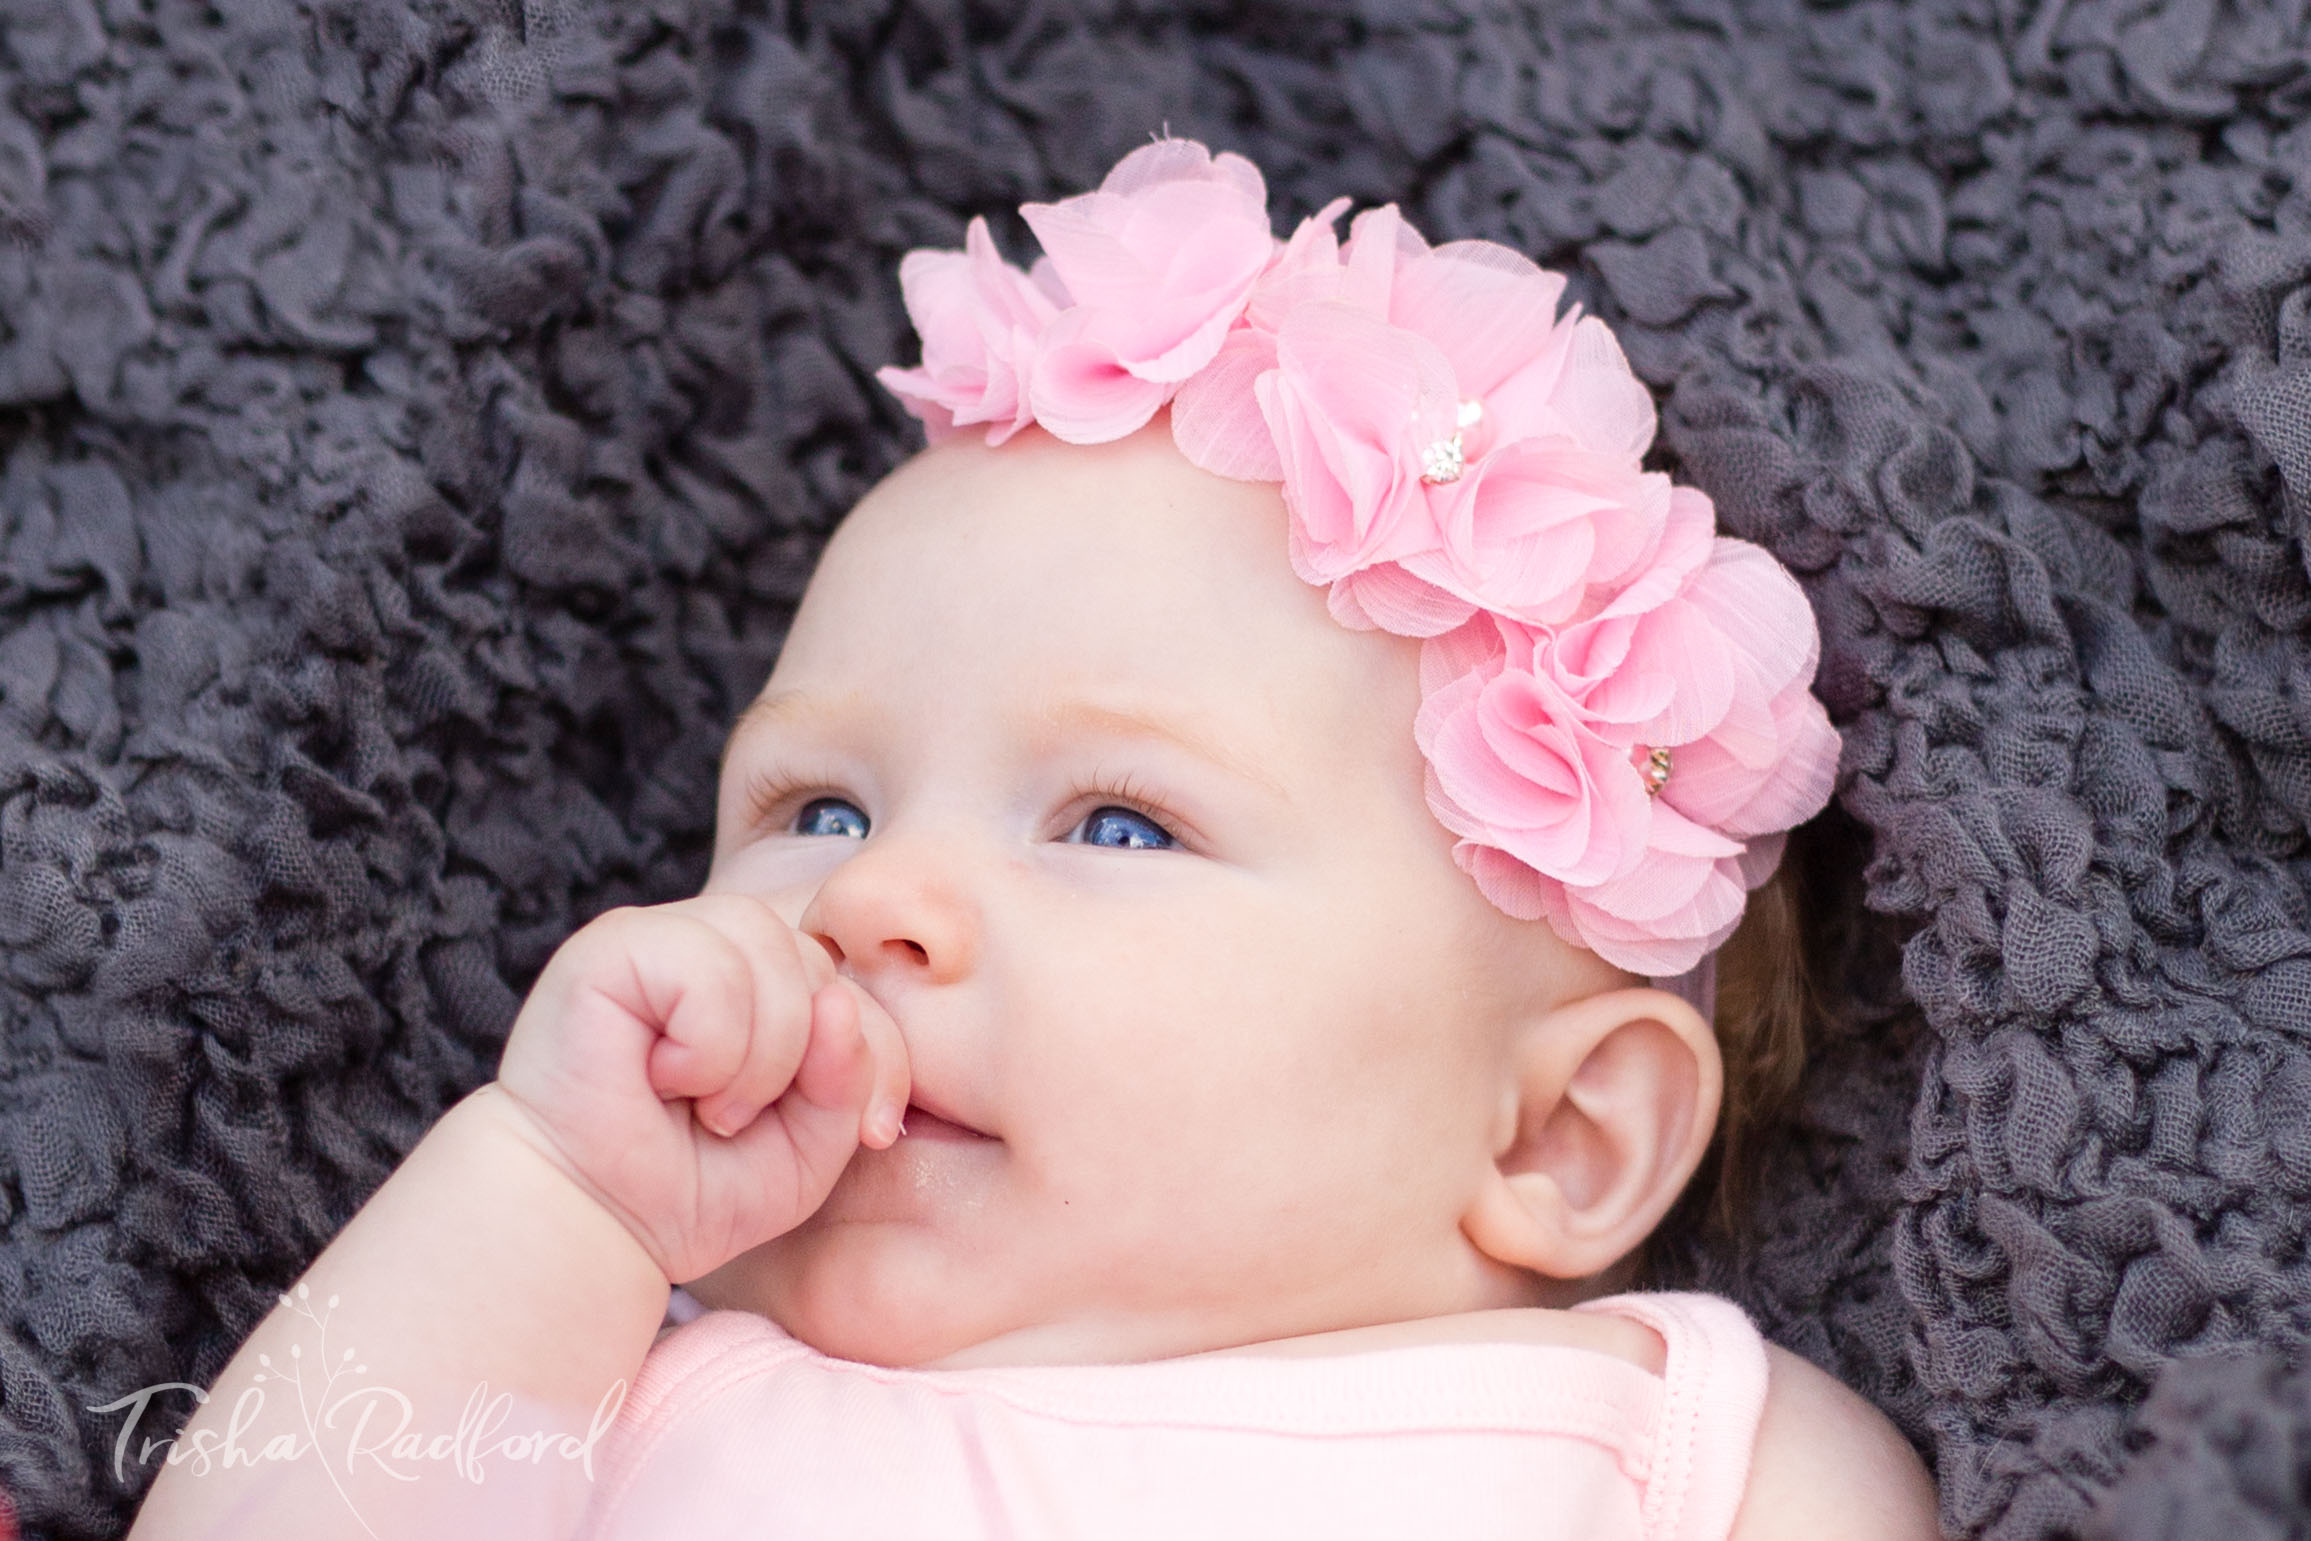 Photo of cute baby girl - Snohomish county baby photographer